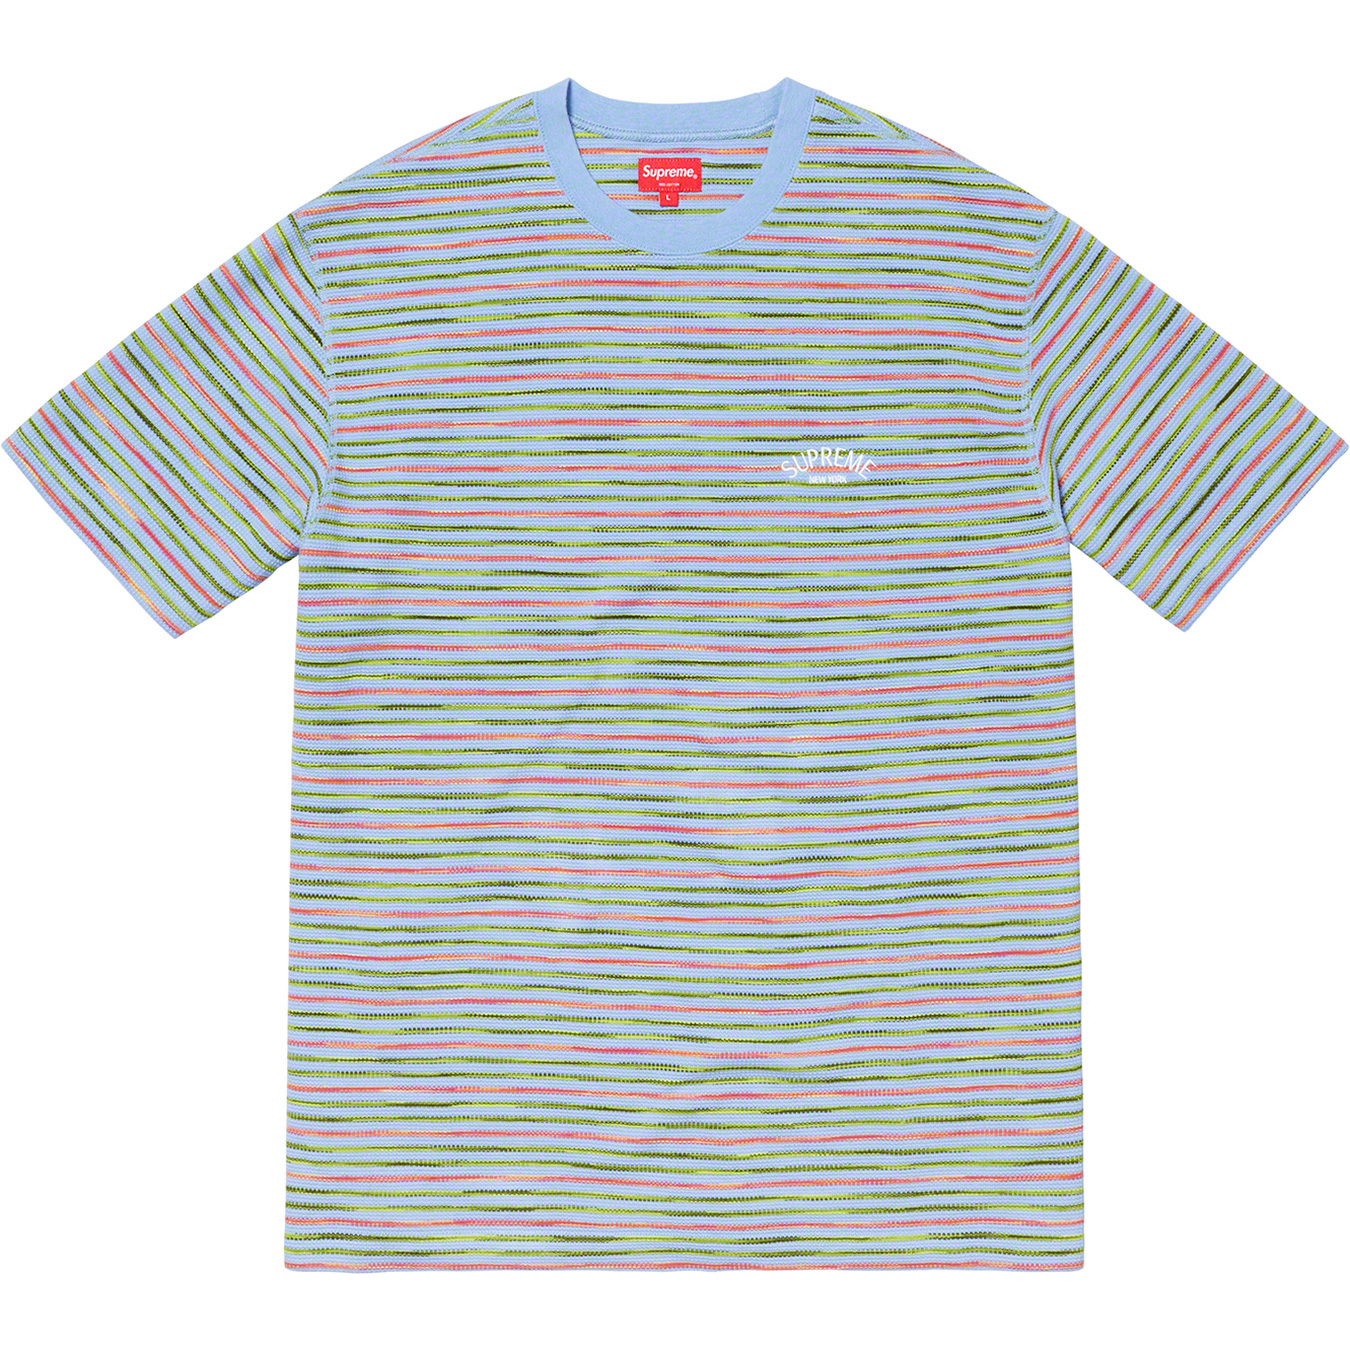 upreme-19ss-spring-summer-stripe-thermal-s-s-top